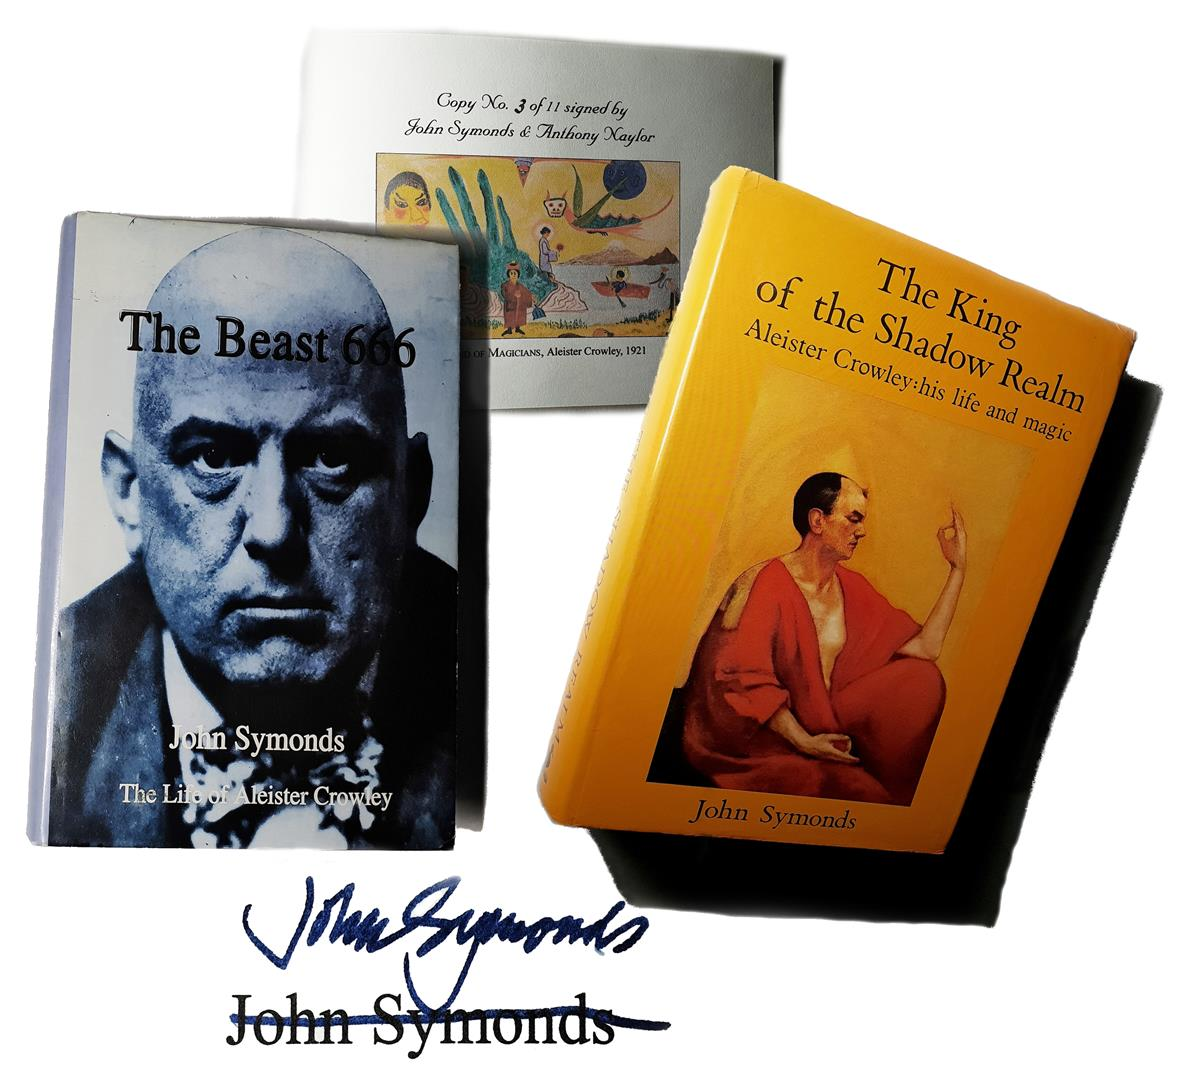 John Symonds, The King of the Shadow Realm. Aleister Crowley: his life and magic, London 1989. The Beast 666. The Life of Aleister Crowley, London 1997, numbered and signed by John Symonds (3 of 11)